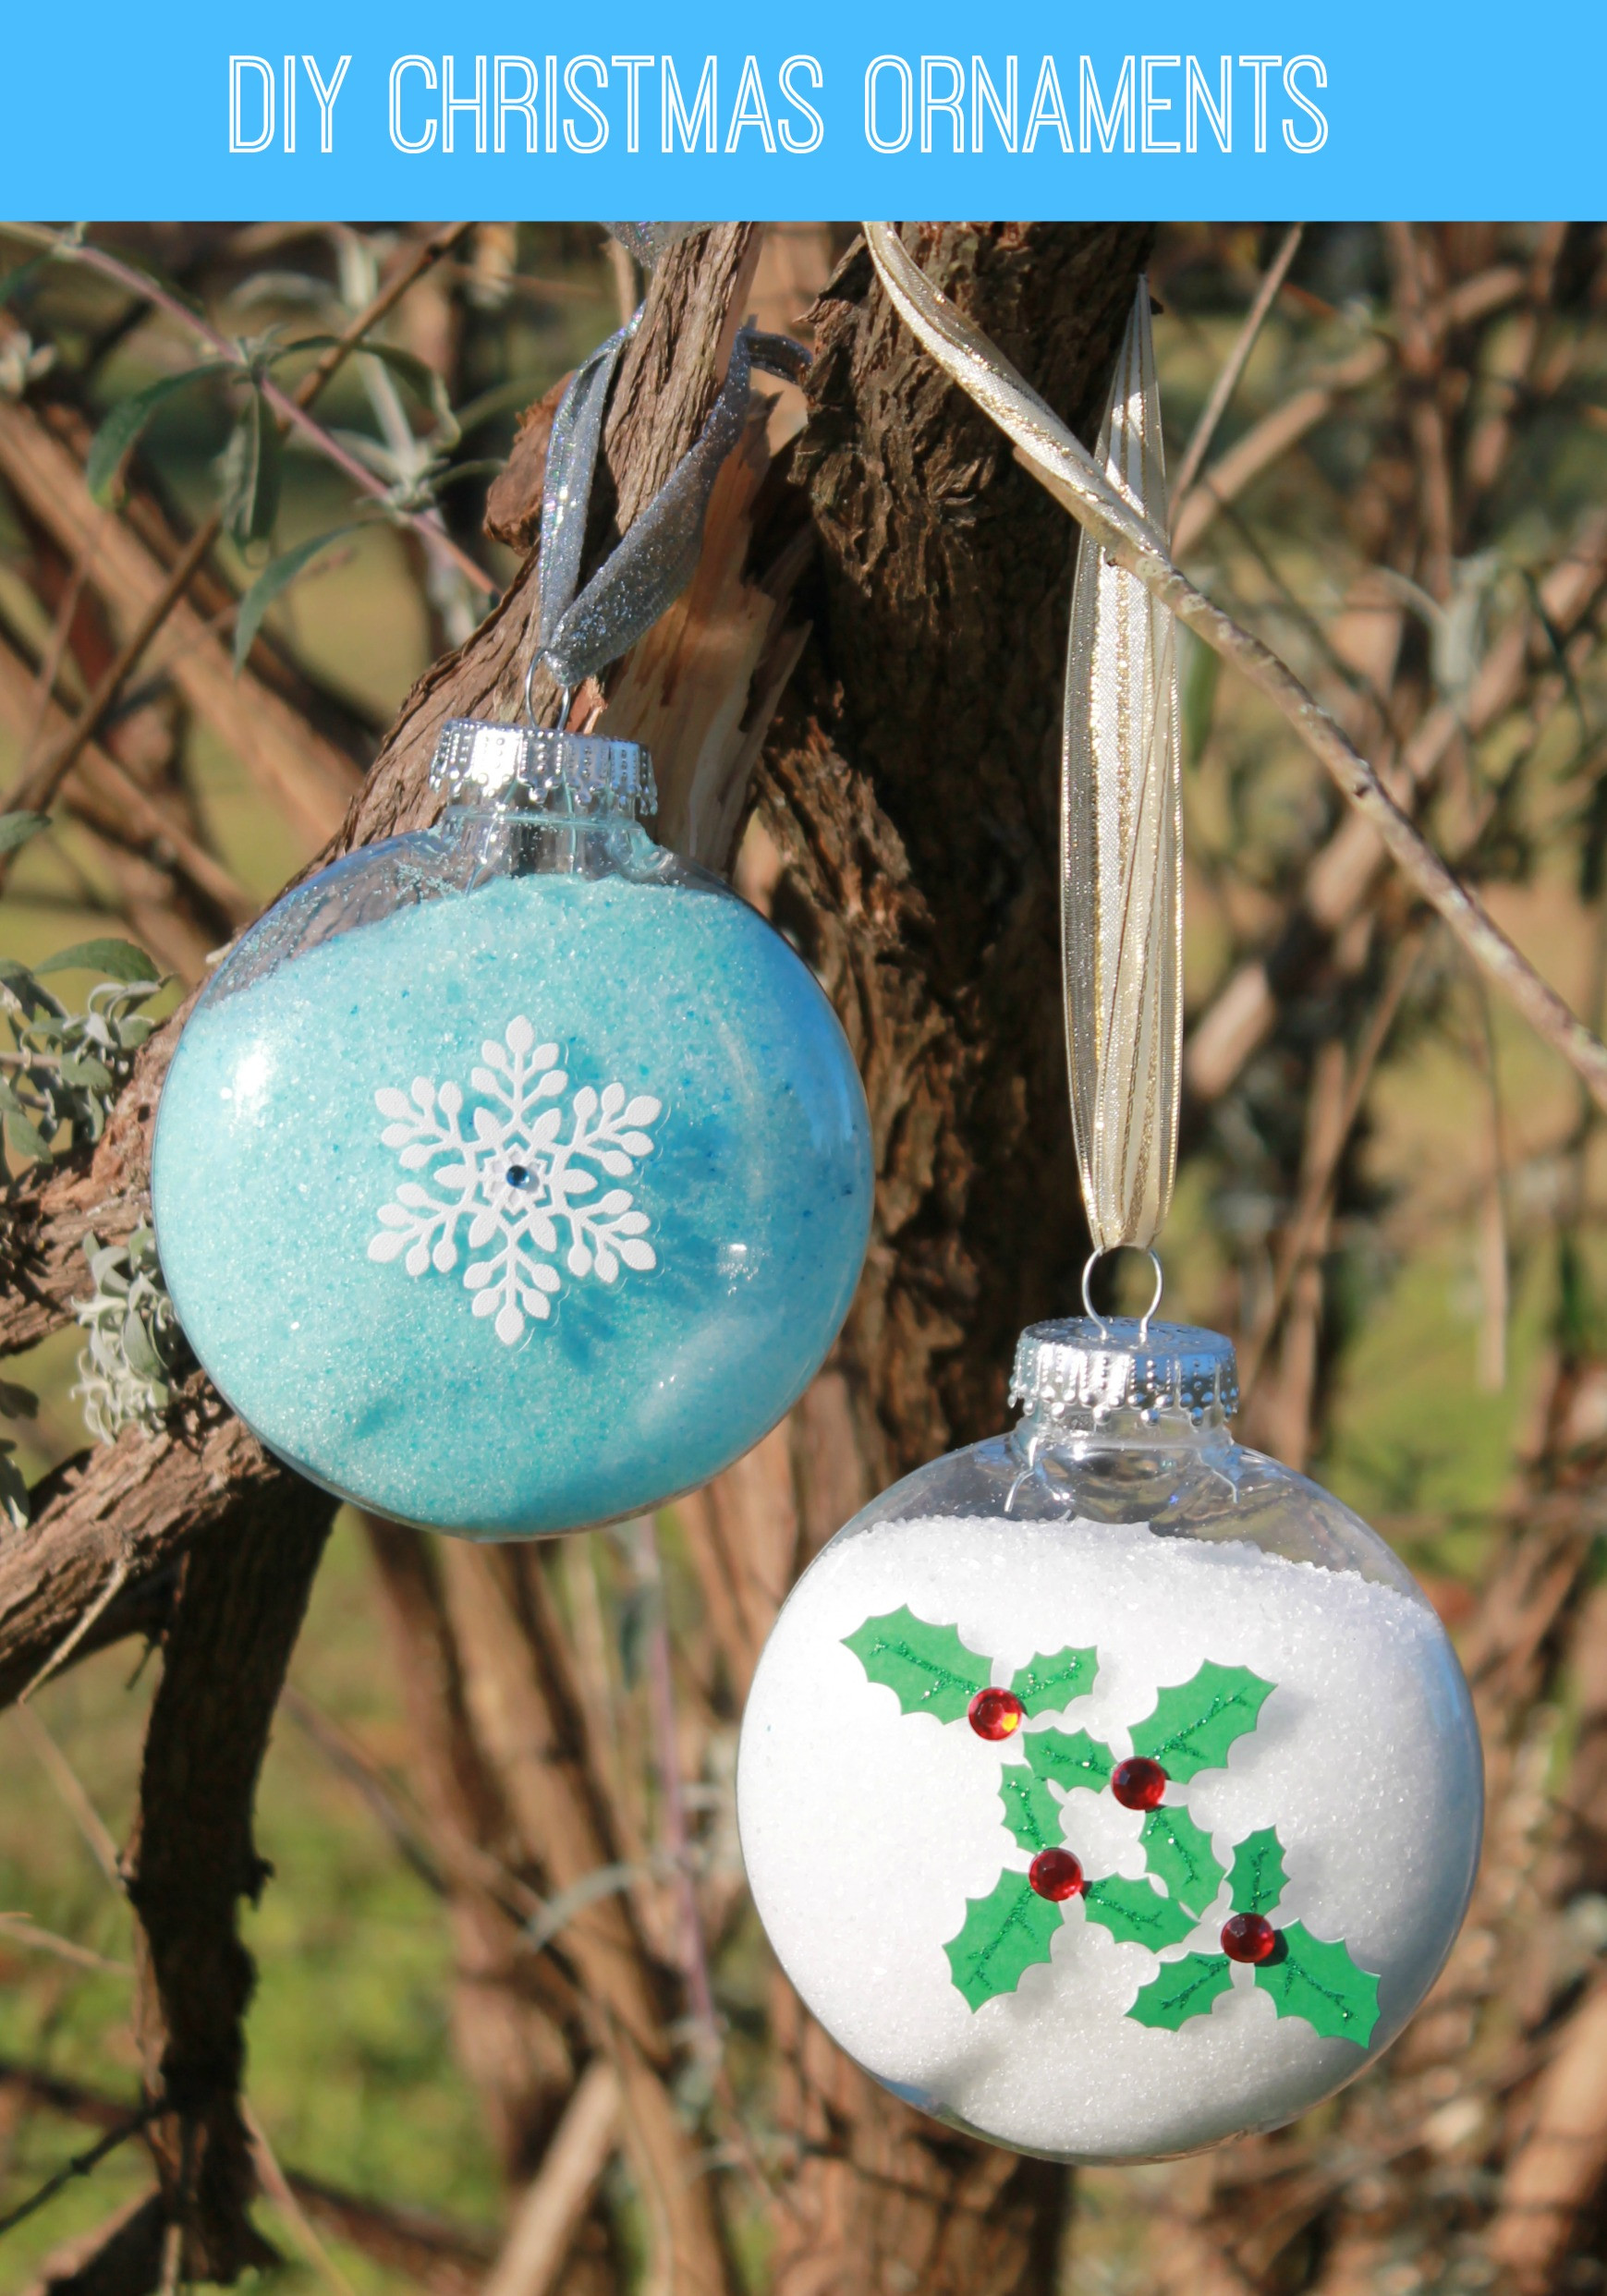 DIY Christmas Ornaments With Pictures  Easy DIY Snowflake Christmas Ornament